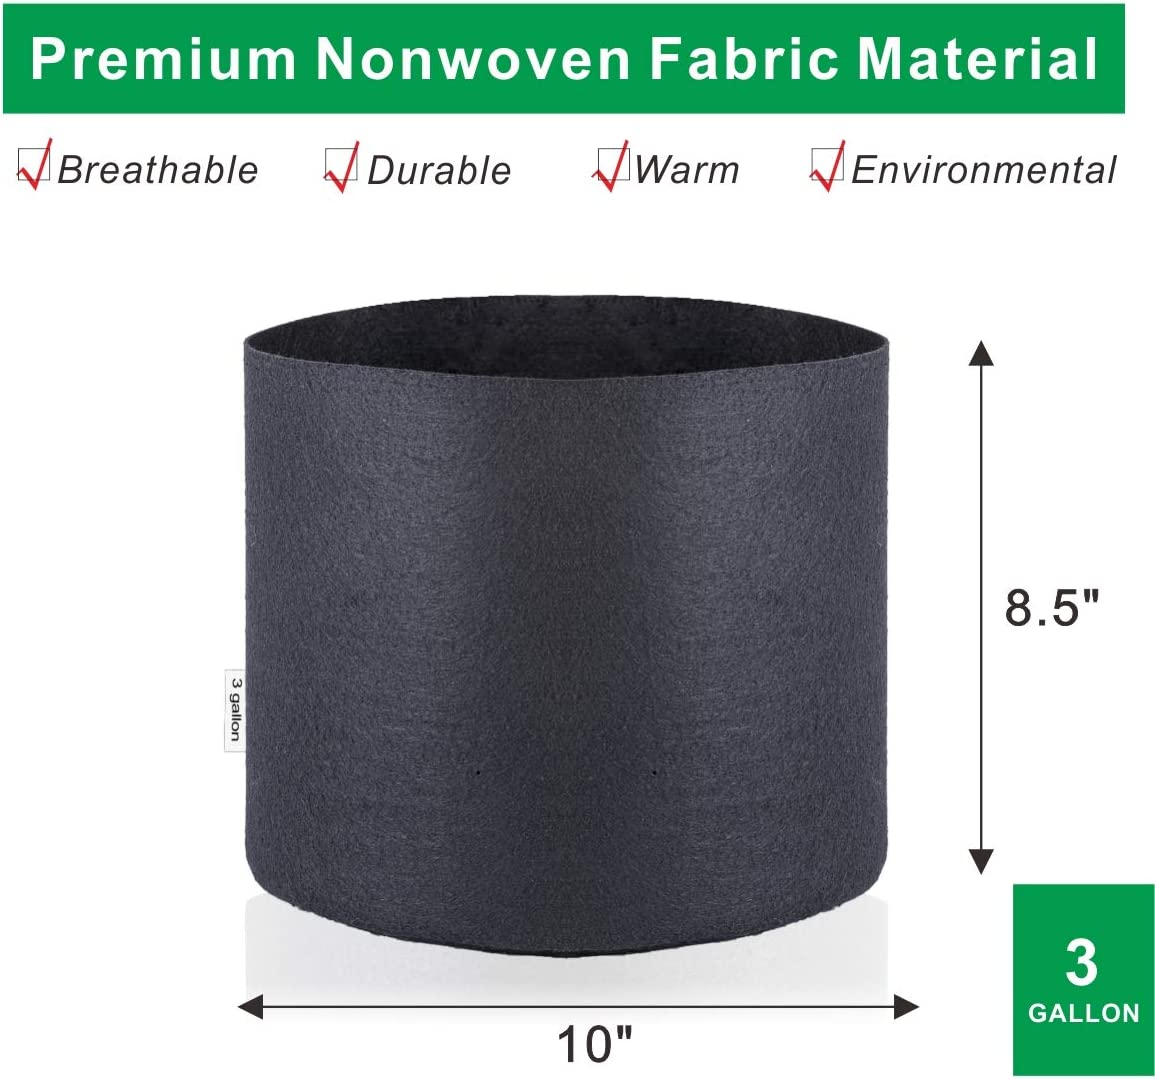 3 Gallon BloomGrow 1 2 3 5 7 10 15 20 25 30 45 65 100 Gallon 12-Pack Planting Grow Bags Black Fabric Grow Pots for Hydroponic Indoor Plant Growing